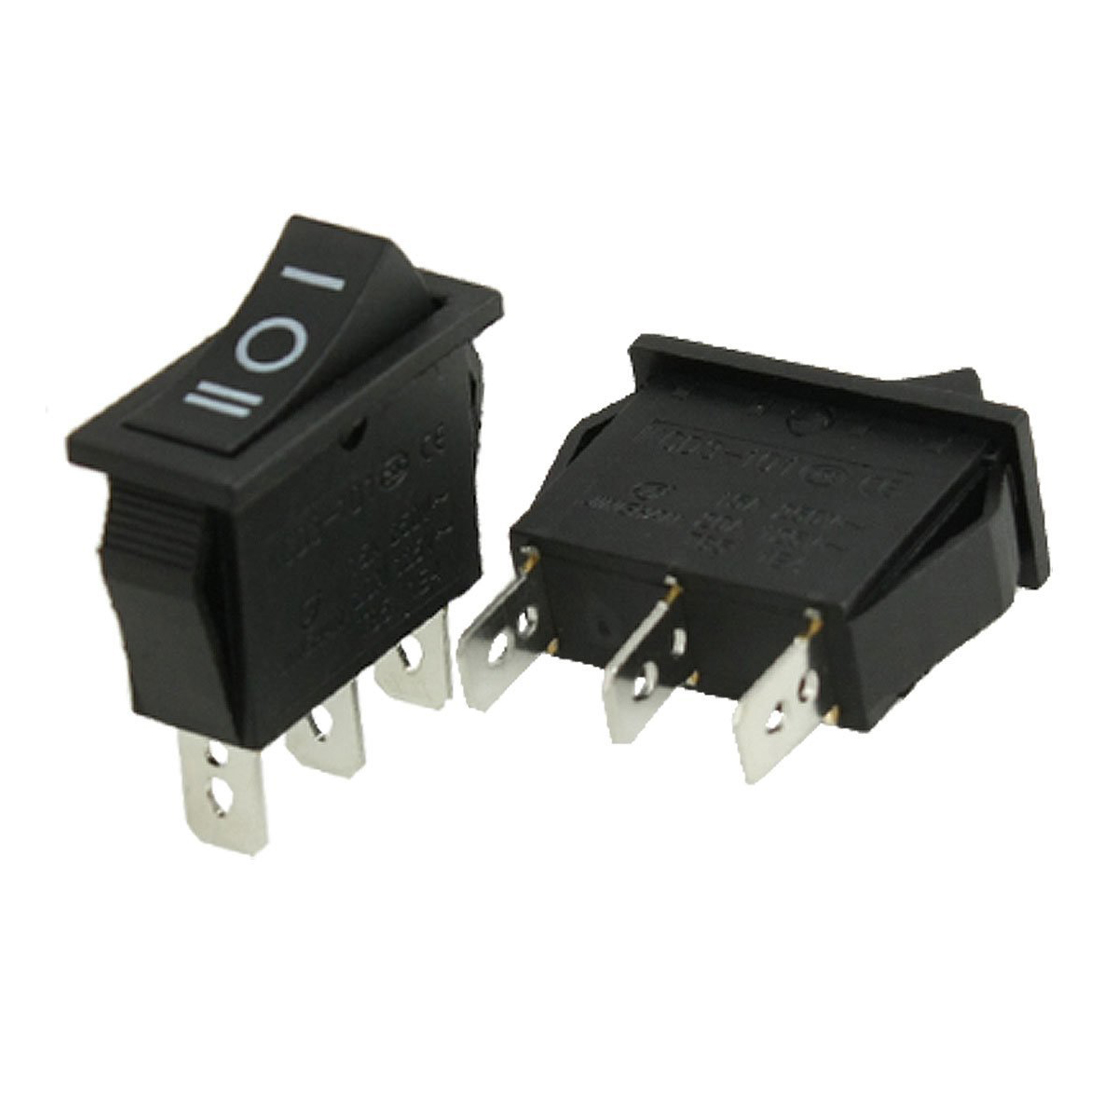 Promotion! 5 pcs x AC 10A/250V 15A/125V 3 Pin SPDT ON-OFF-ON 3 Position Boat Rocker Switch